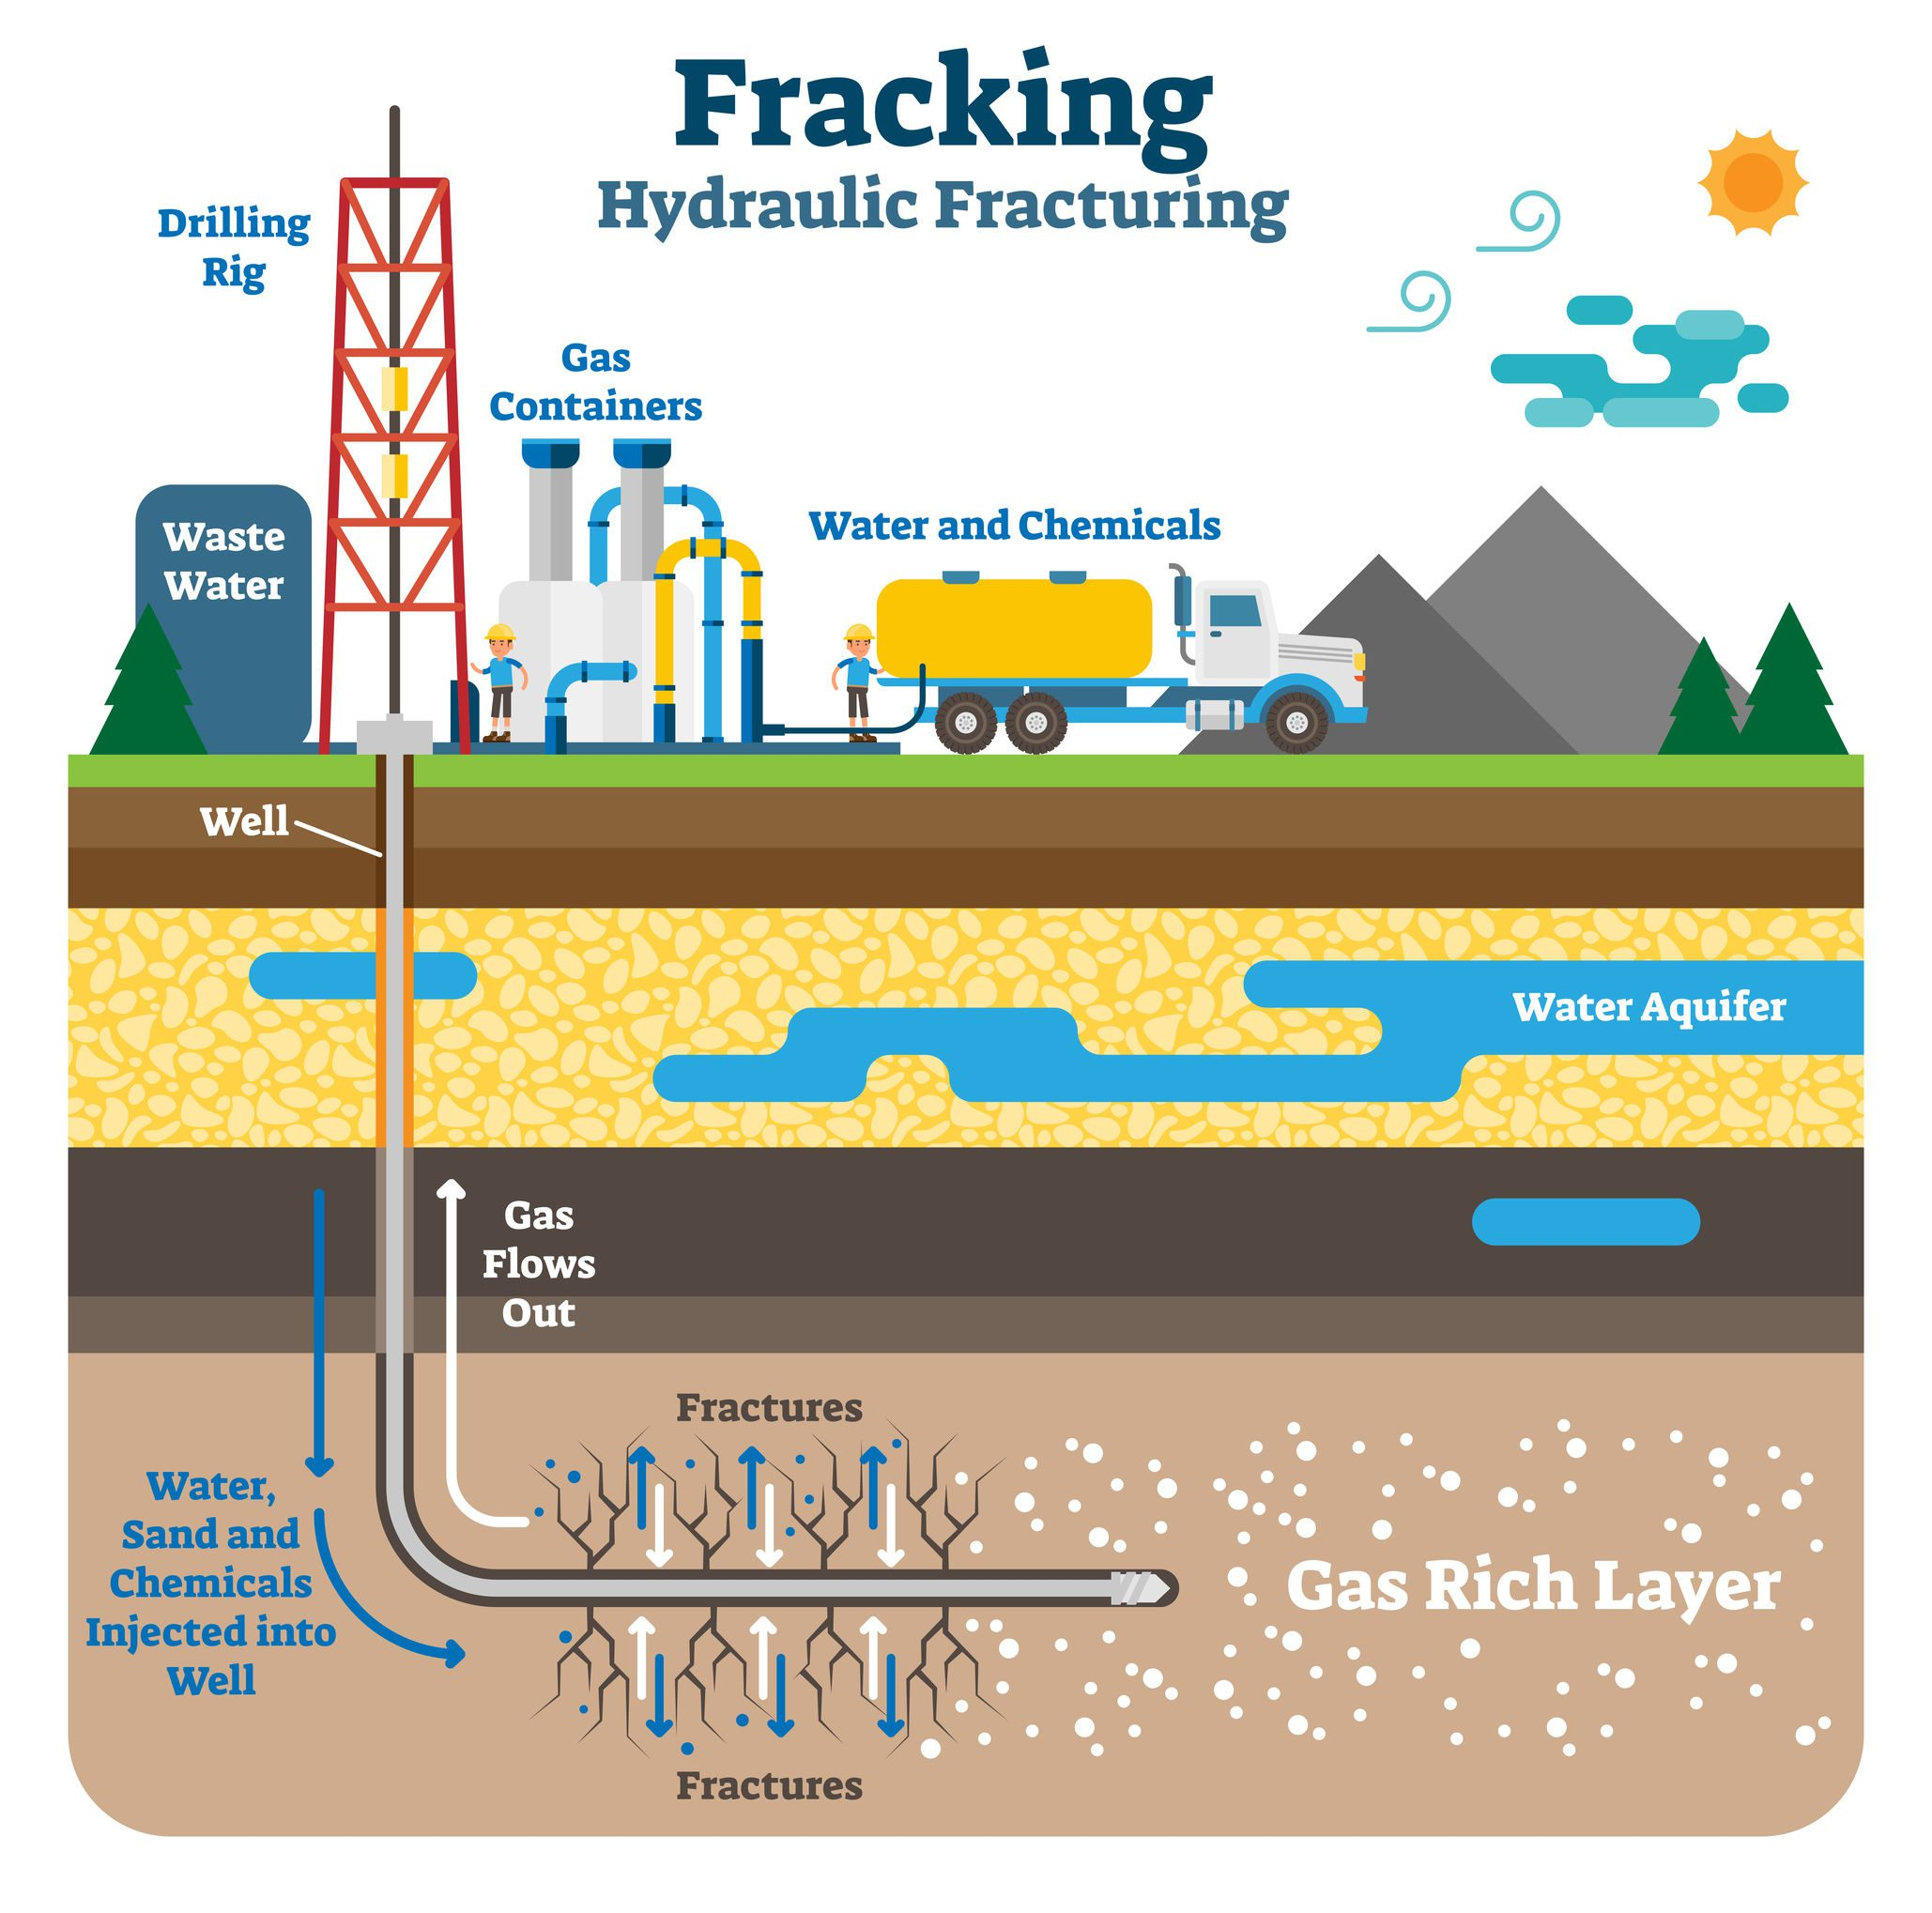 The process of fracking involves drilling a well and inserting a steel pipe into the wellbore. The casing of the steel pipe is targeted into the zones that consist of gas and oil. The fluid for fracturing is injected into the well, and this is when the targeted area will not be able to absorb as much fluid as it is being injected. When this becomes the case, then the targeted formation begins to fracture or crack.